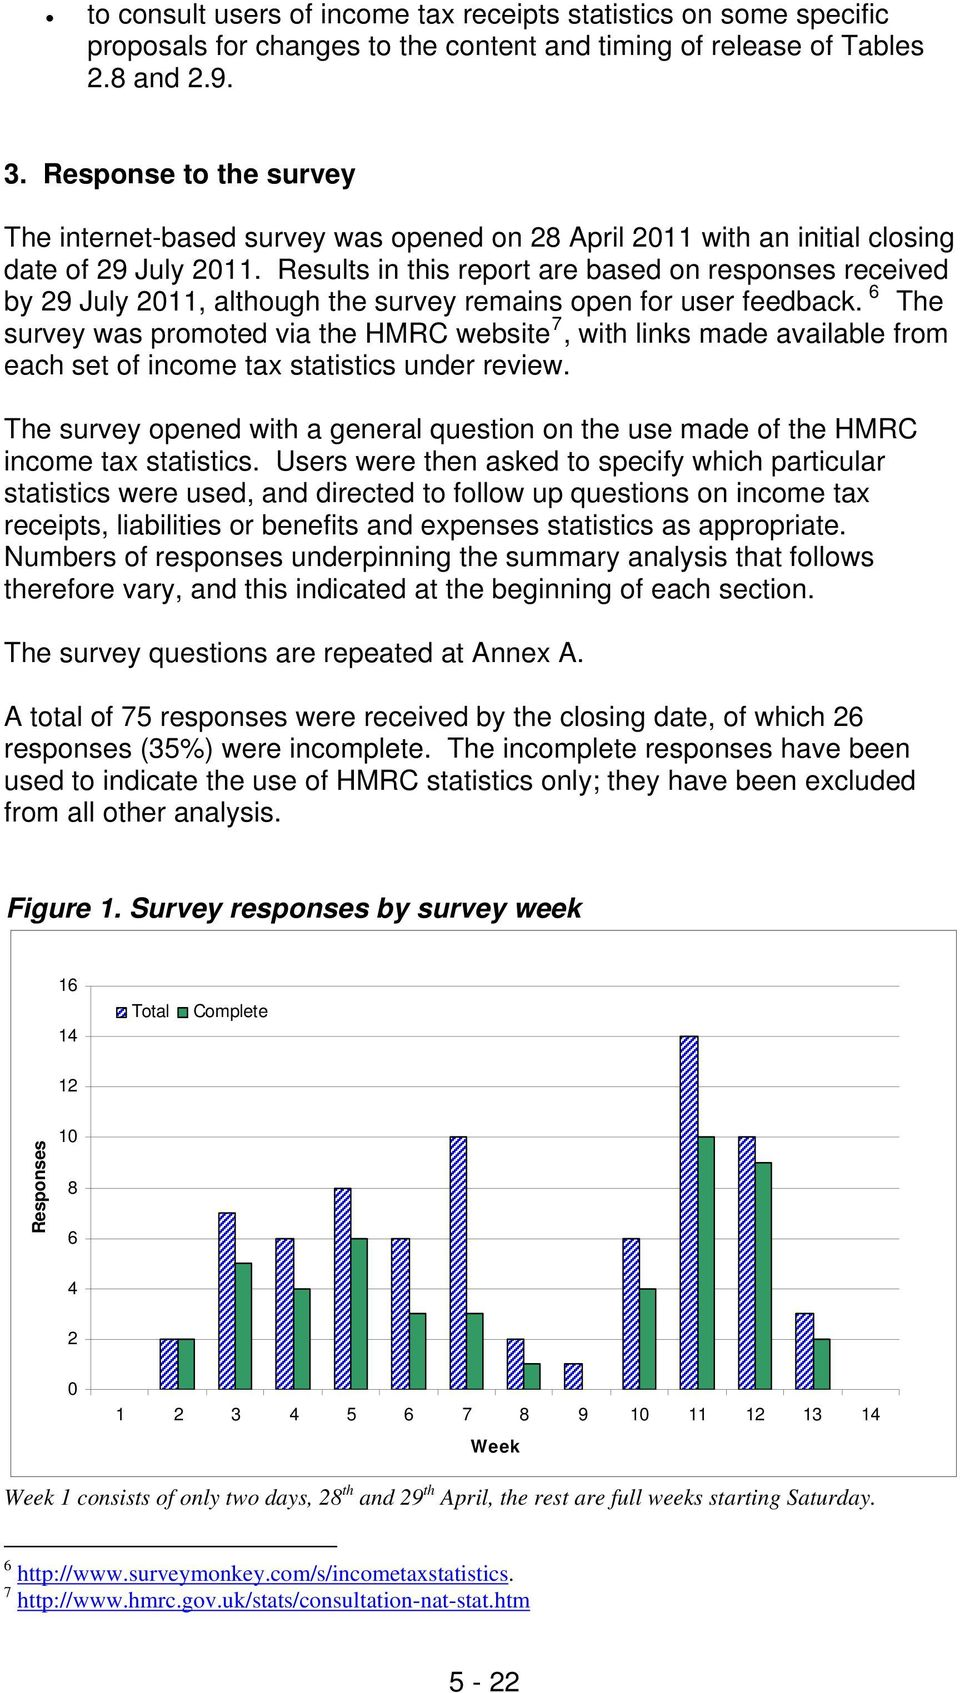 Results in this report are based on responses received by 29 July 2011, although the survey remains open for user feedback.